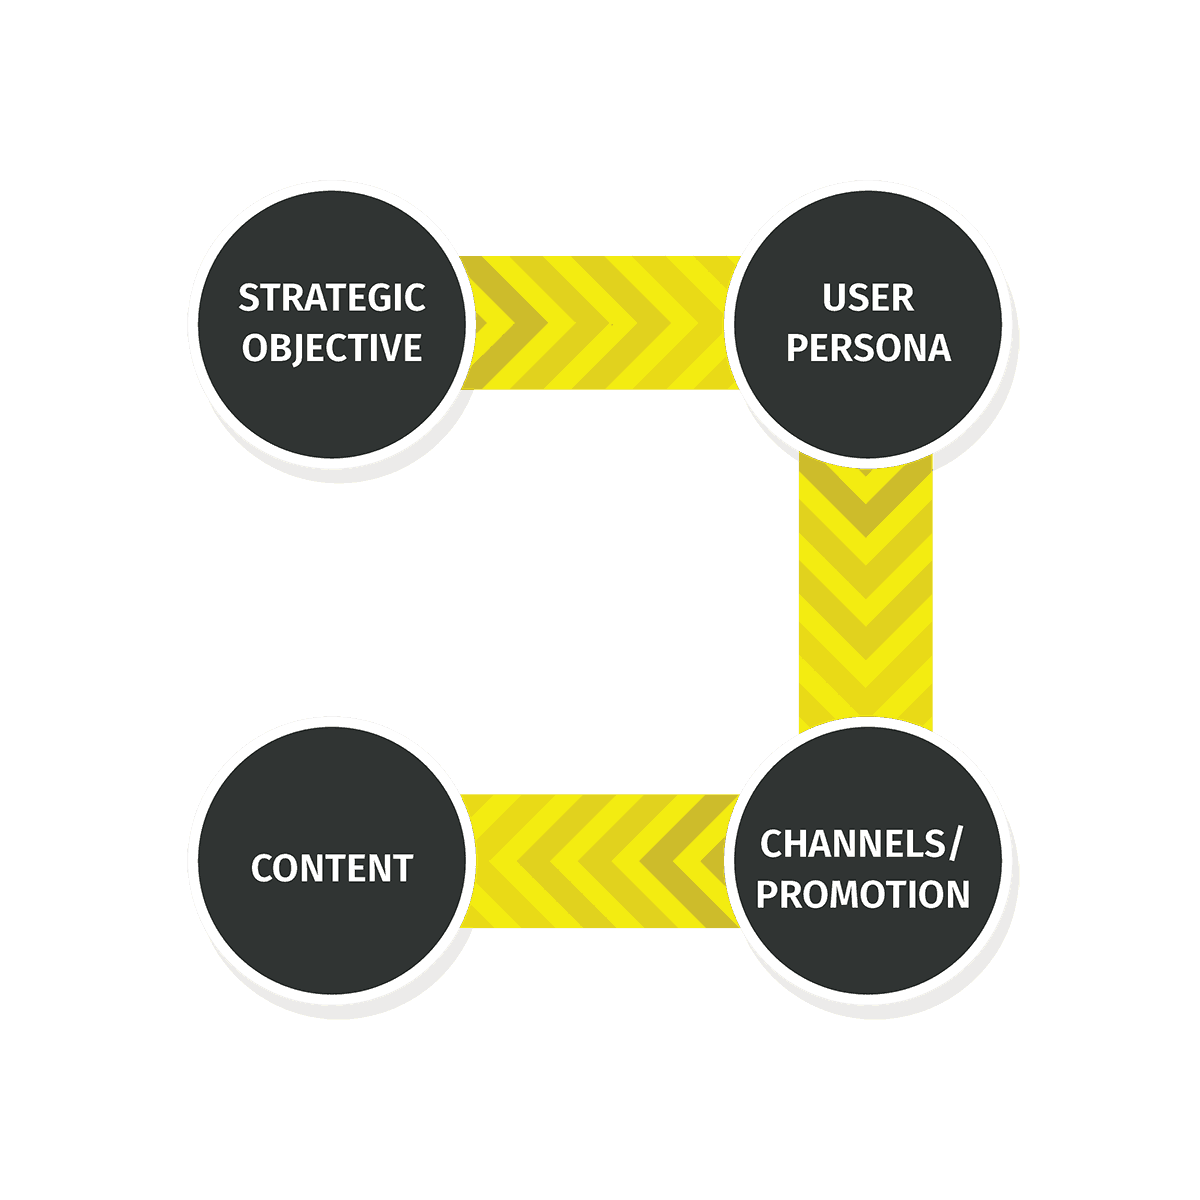 You need to begin planning for content marketing by considering your strategic objectives and then working through which users/personas are relevant, which channels you'll use to reach them, and then which content will be most effective in communicating your message.